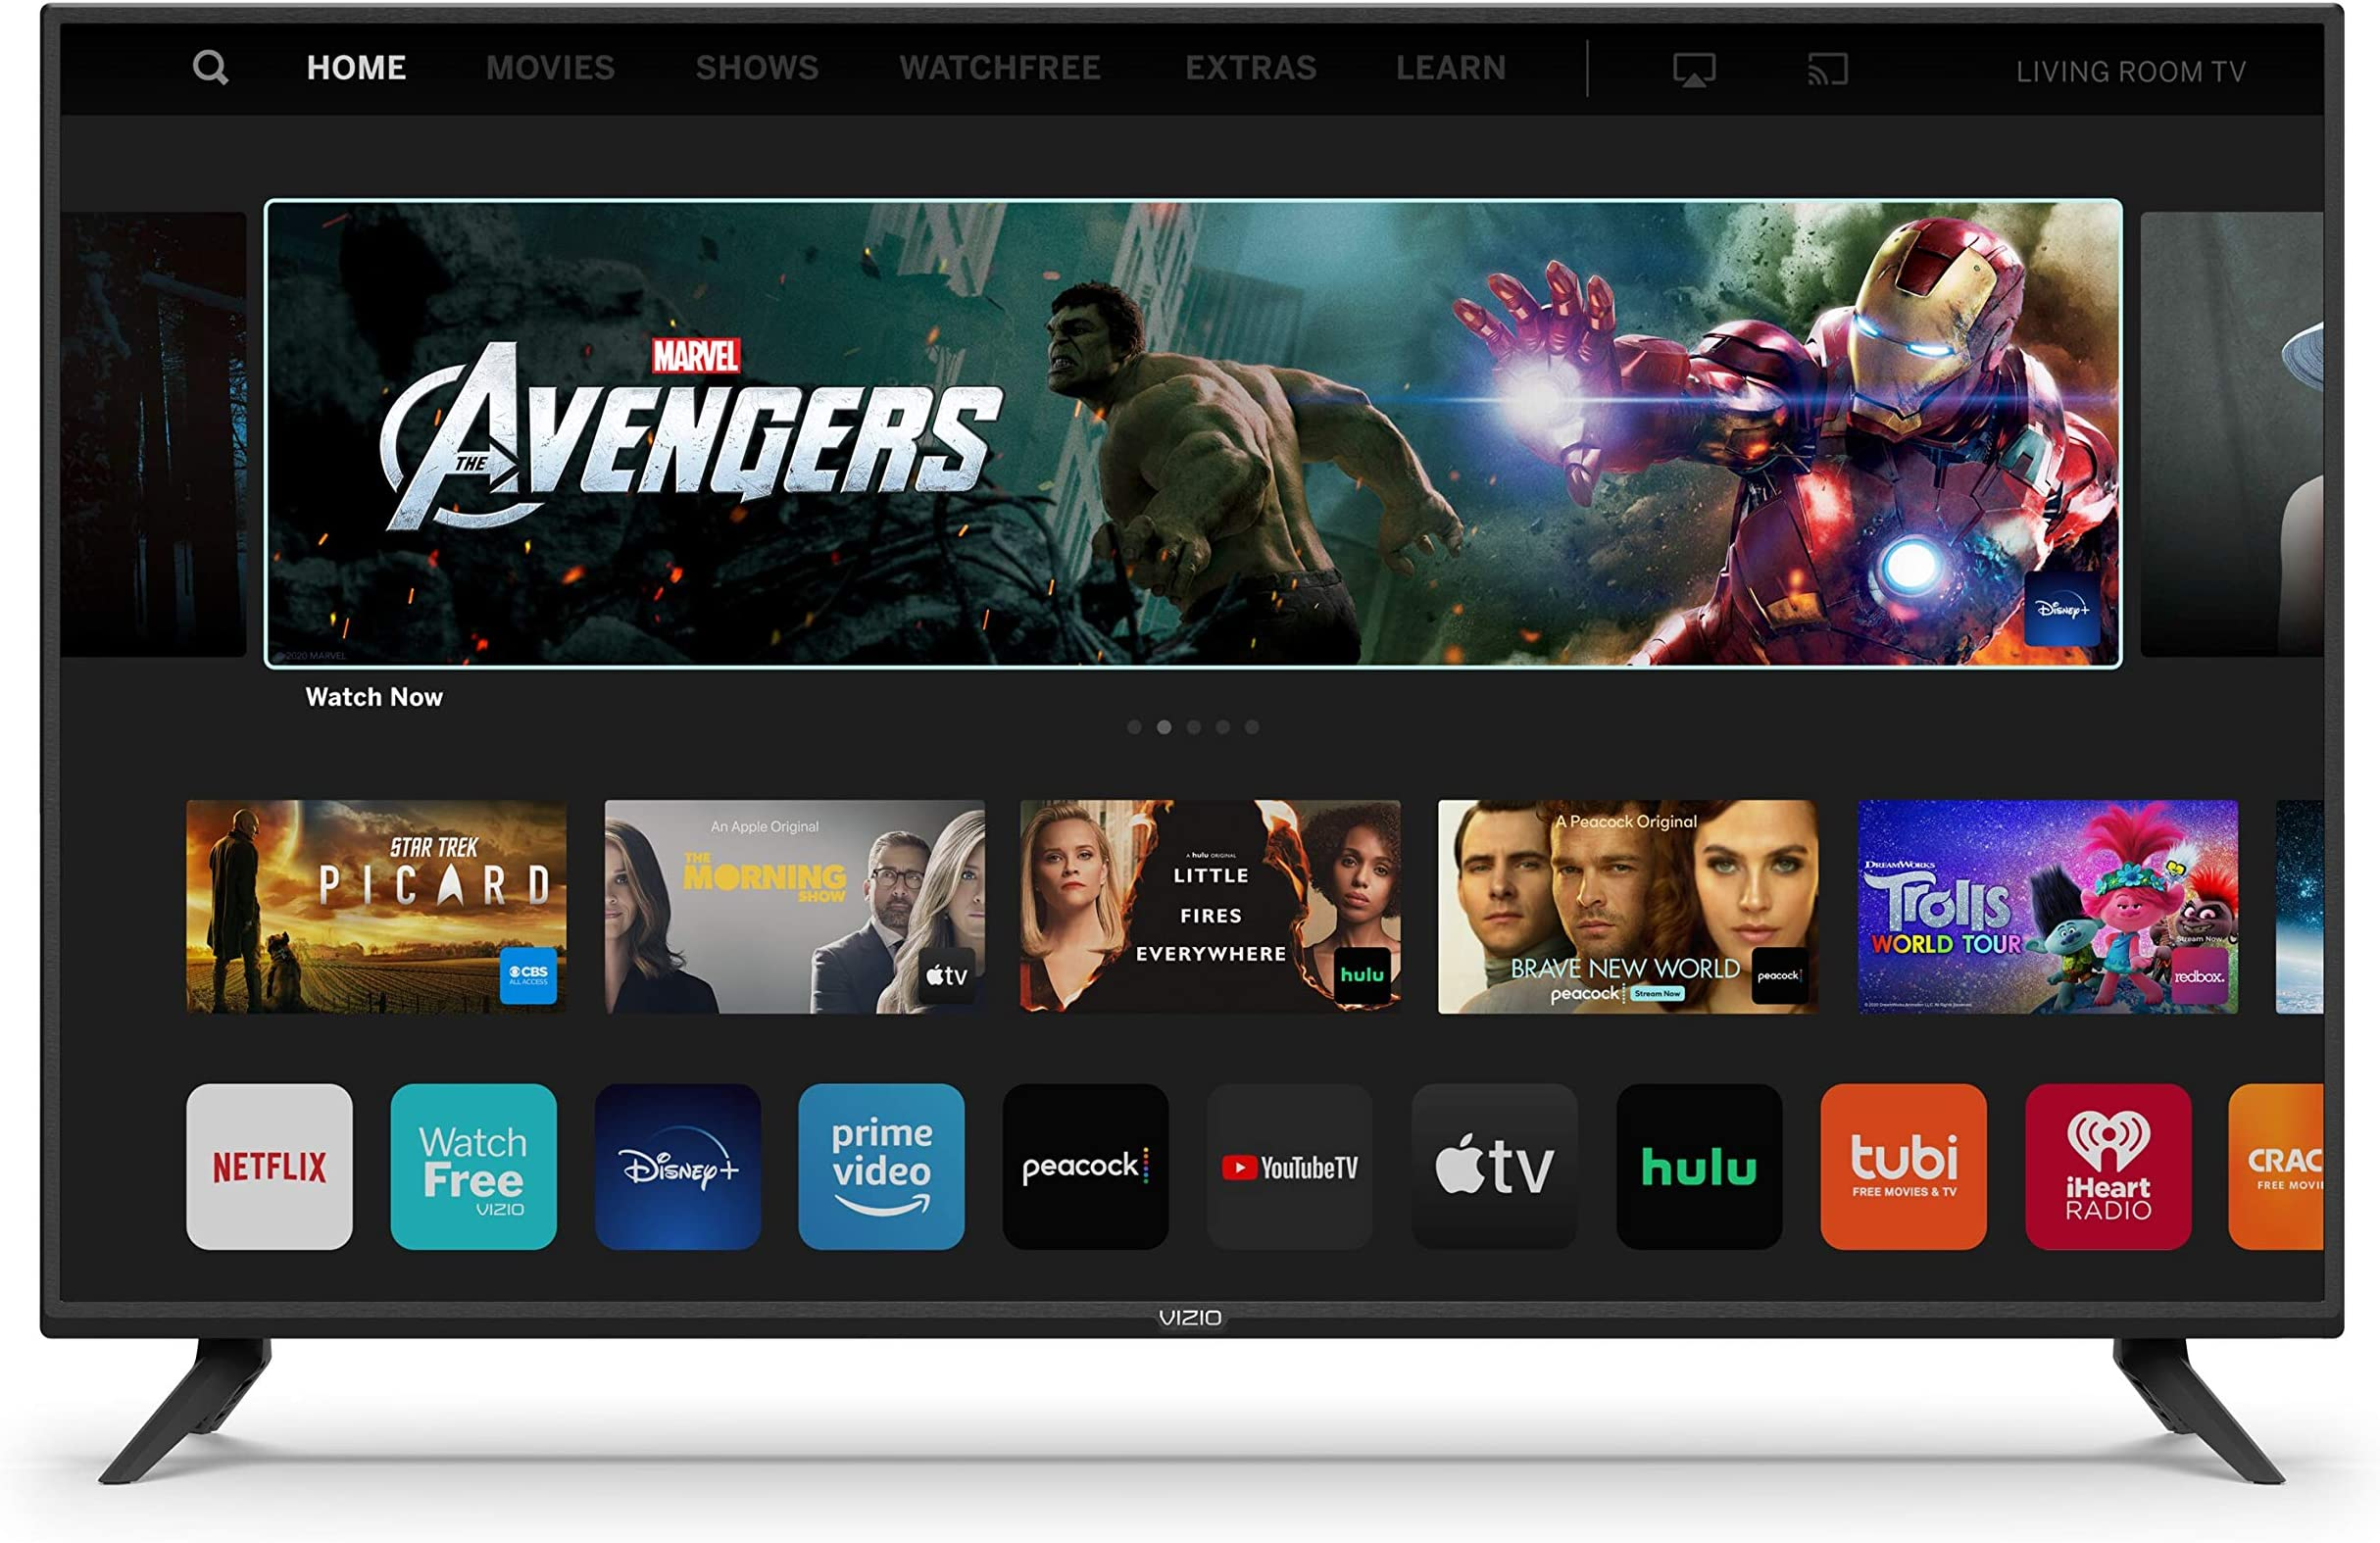 VIZIO 40-Inch V-Series 4K UHD LED HDR Smart TV with Apple AirPlay and Chromecast Built-in, Dolby Vision, HDR10+, HDMI 2.1, Auto Game Mode and Low Latency Gaming (V405-H19)